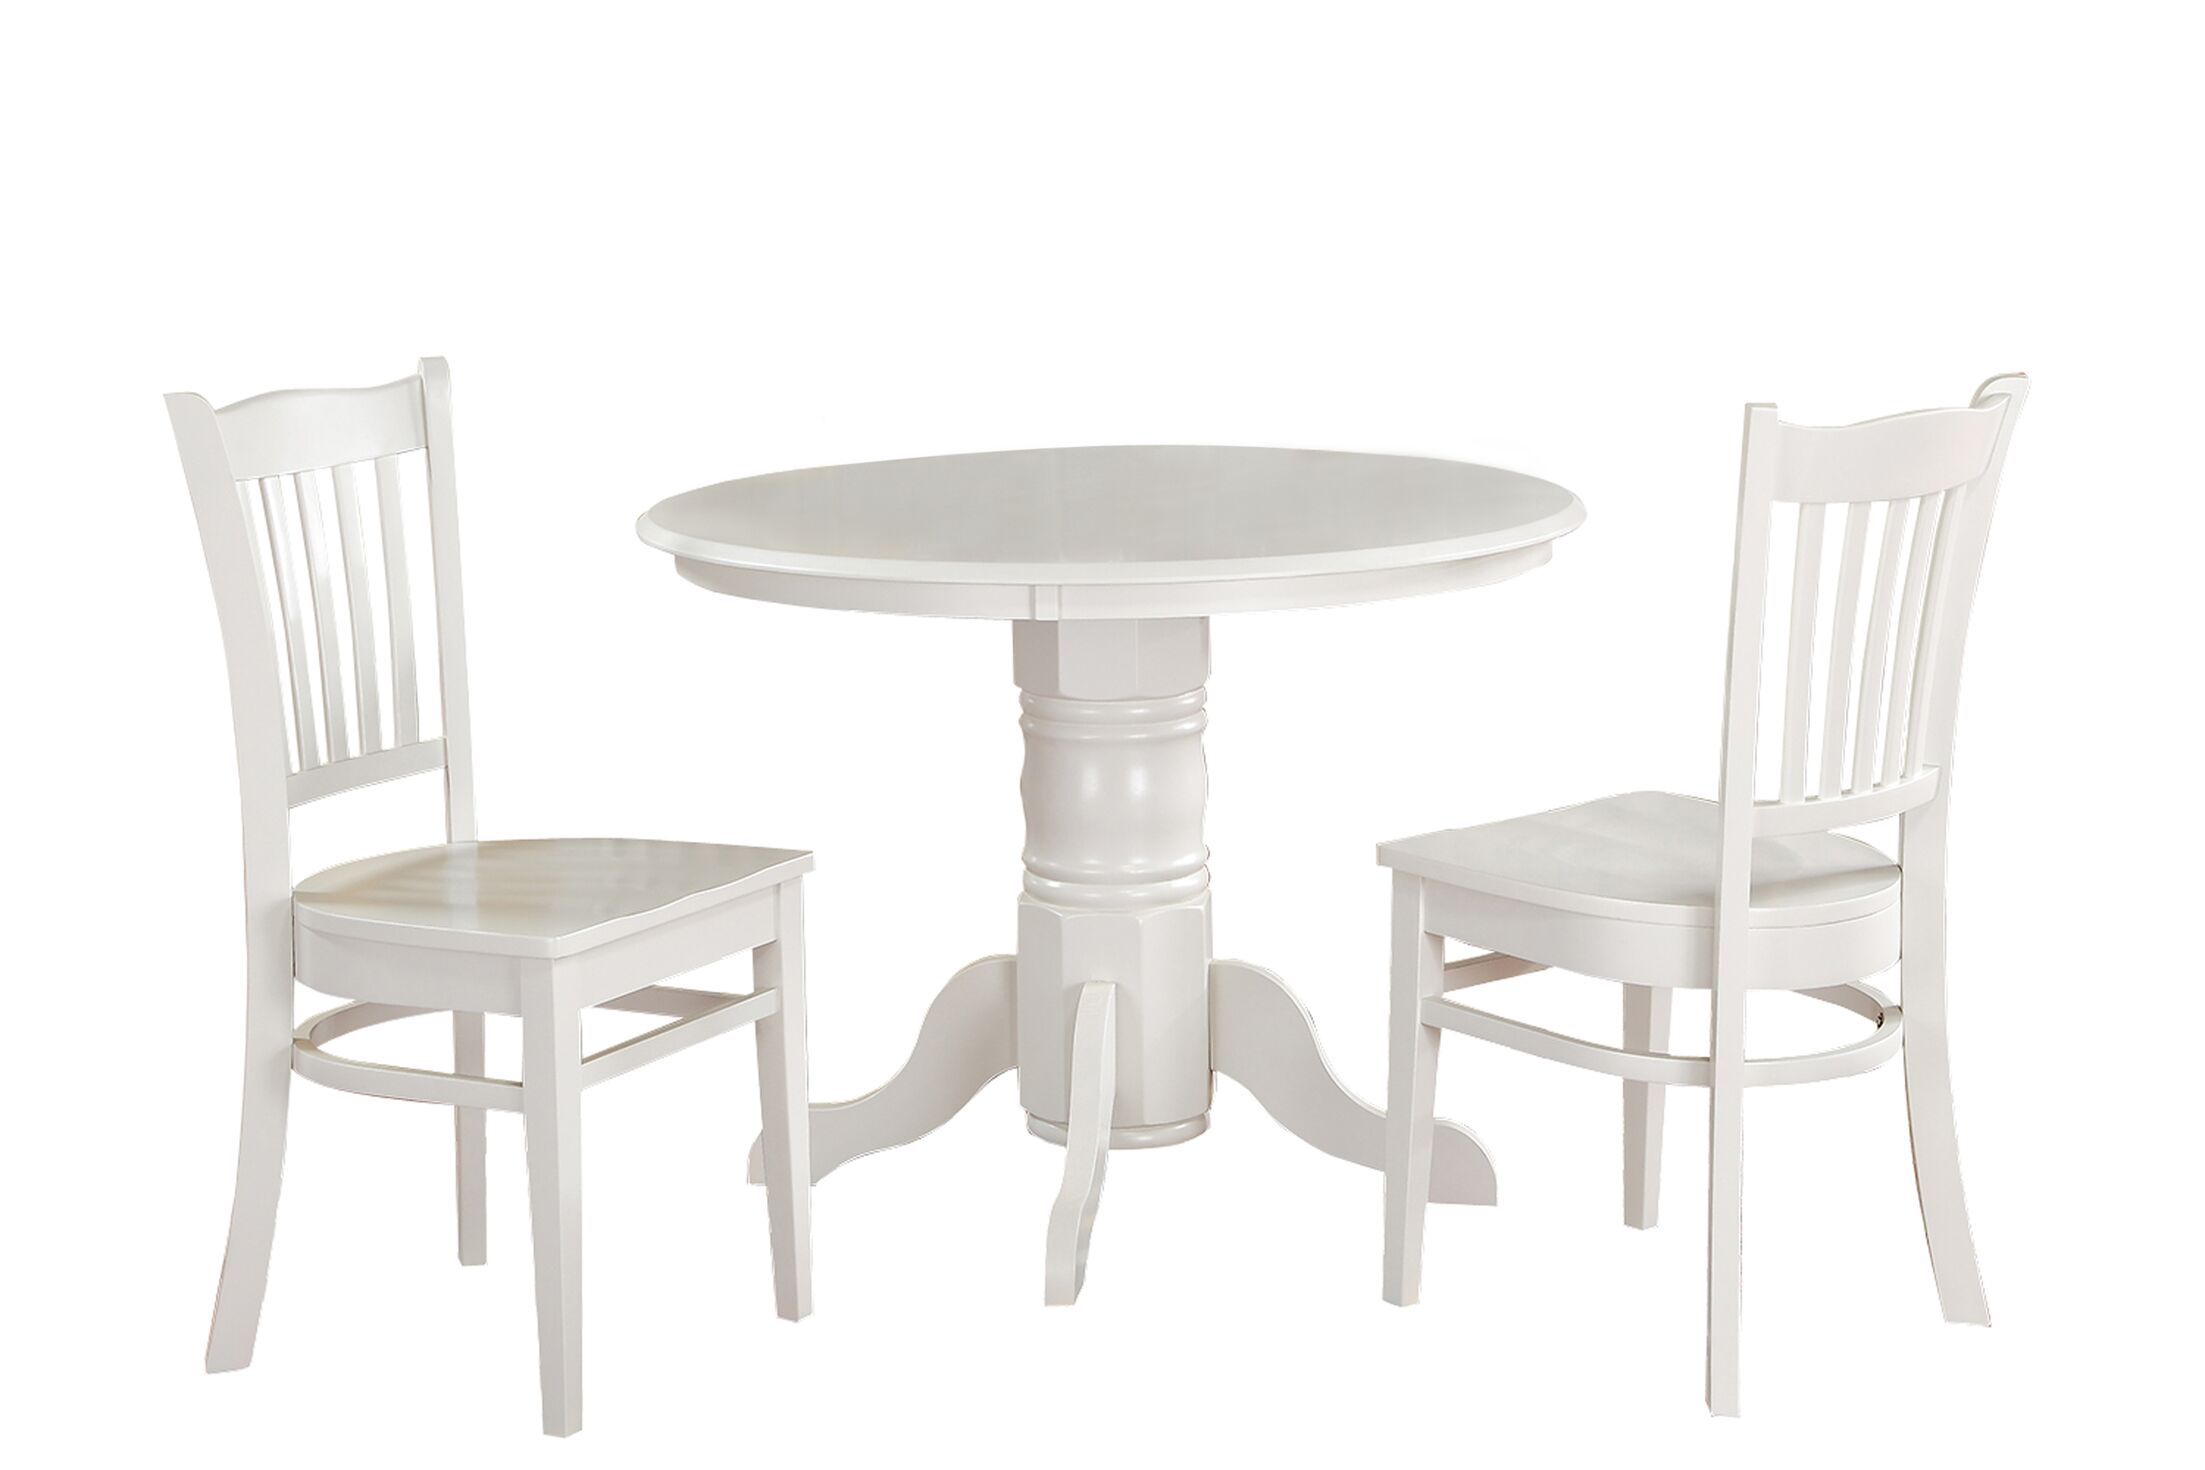 Morley 3 Piece Solid Wood Dining Set Finish: White